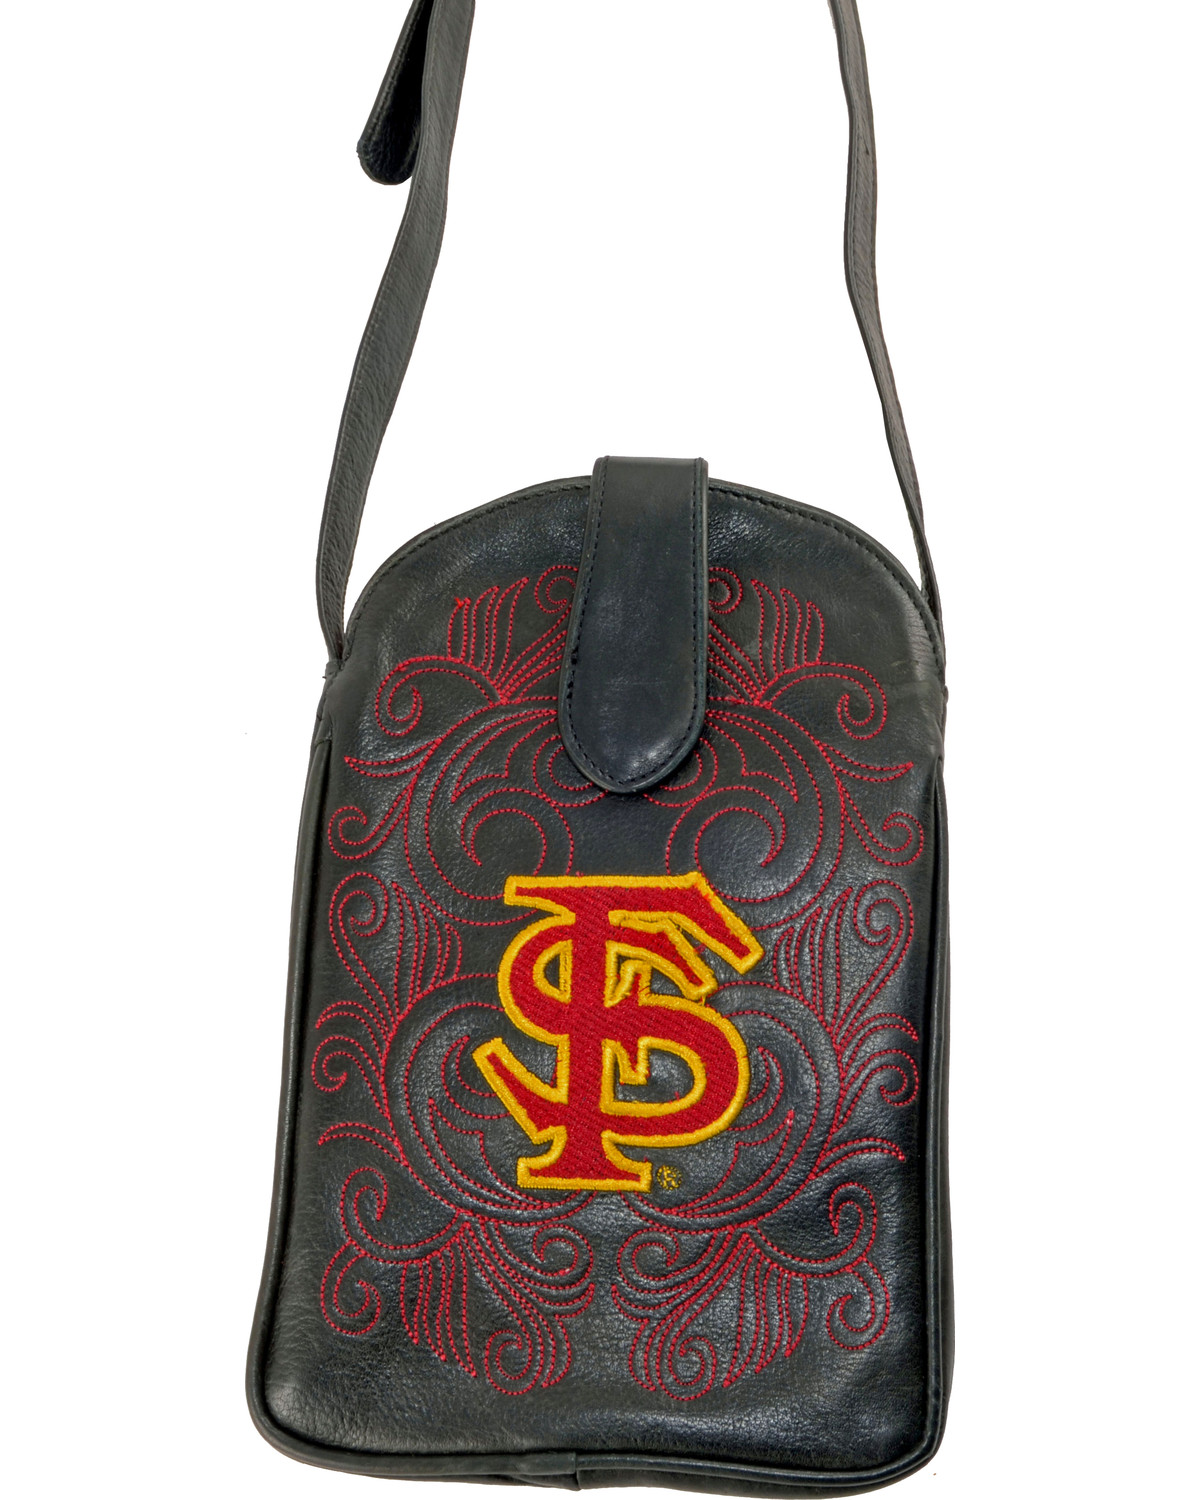 5b70234cd0 Gameday Boots Florida State University Crossbody Bag